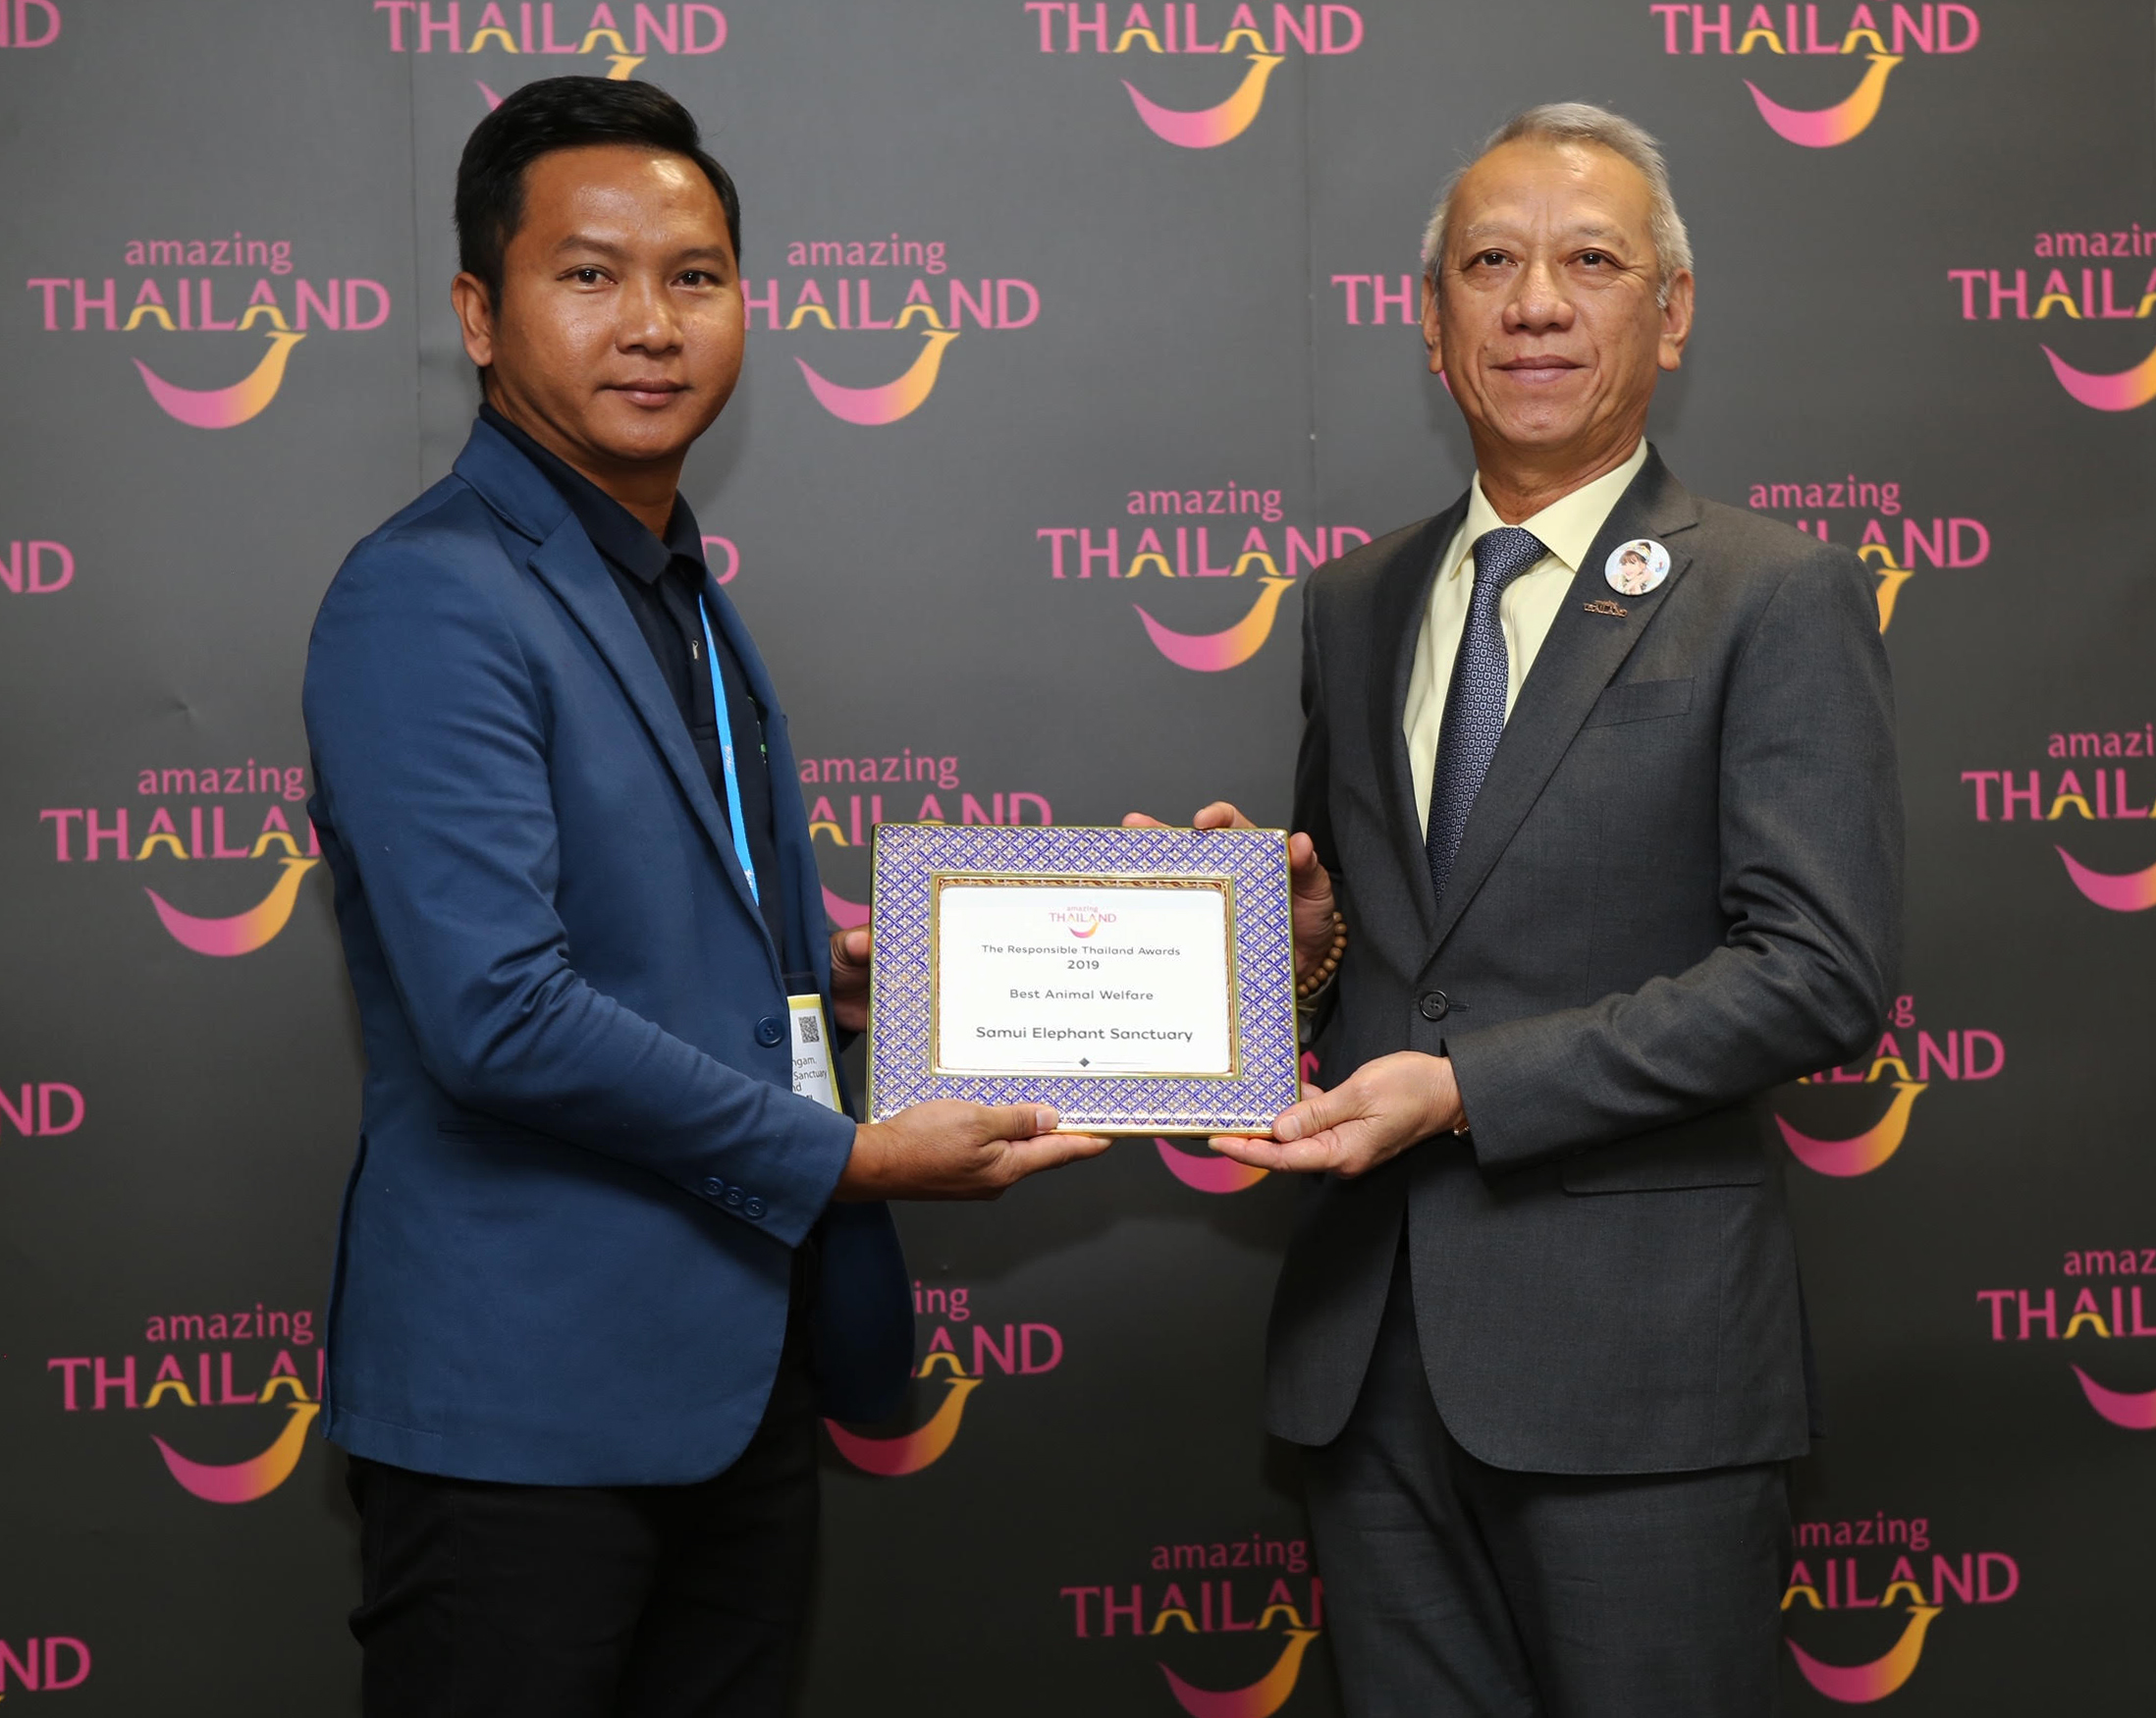 Samui Elephant Sanctuary wins 'Responsible Thailand' award 2019 | Samui Times